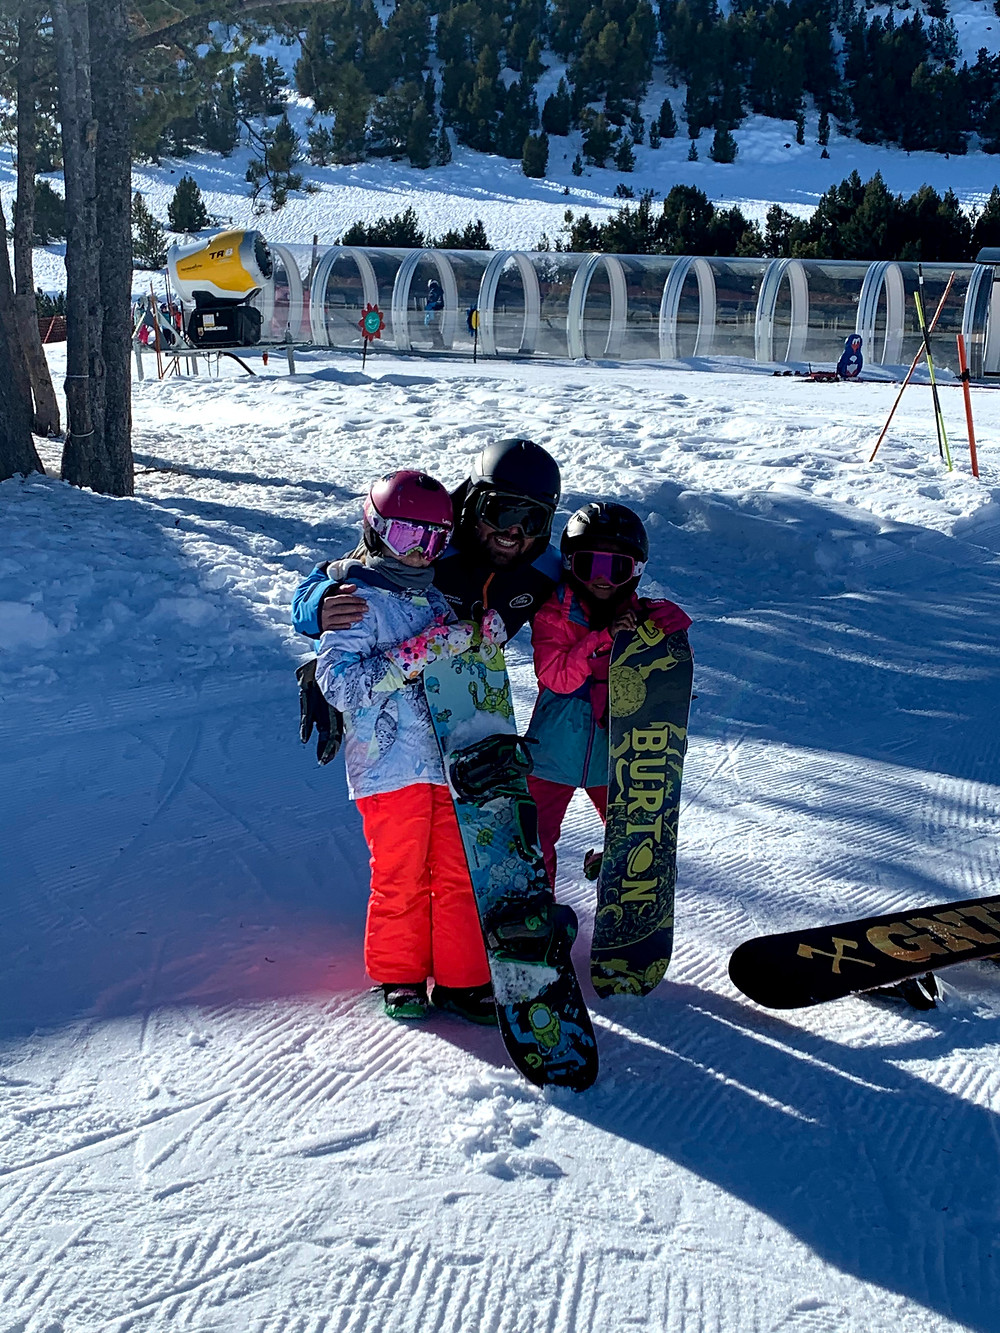 Hi, I am Zazi, a young snowboard gril. Here I am with our teacher Carlos and my best friend Cristina. We went snowboarding for the first time. He was a great teacher.